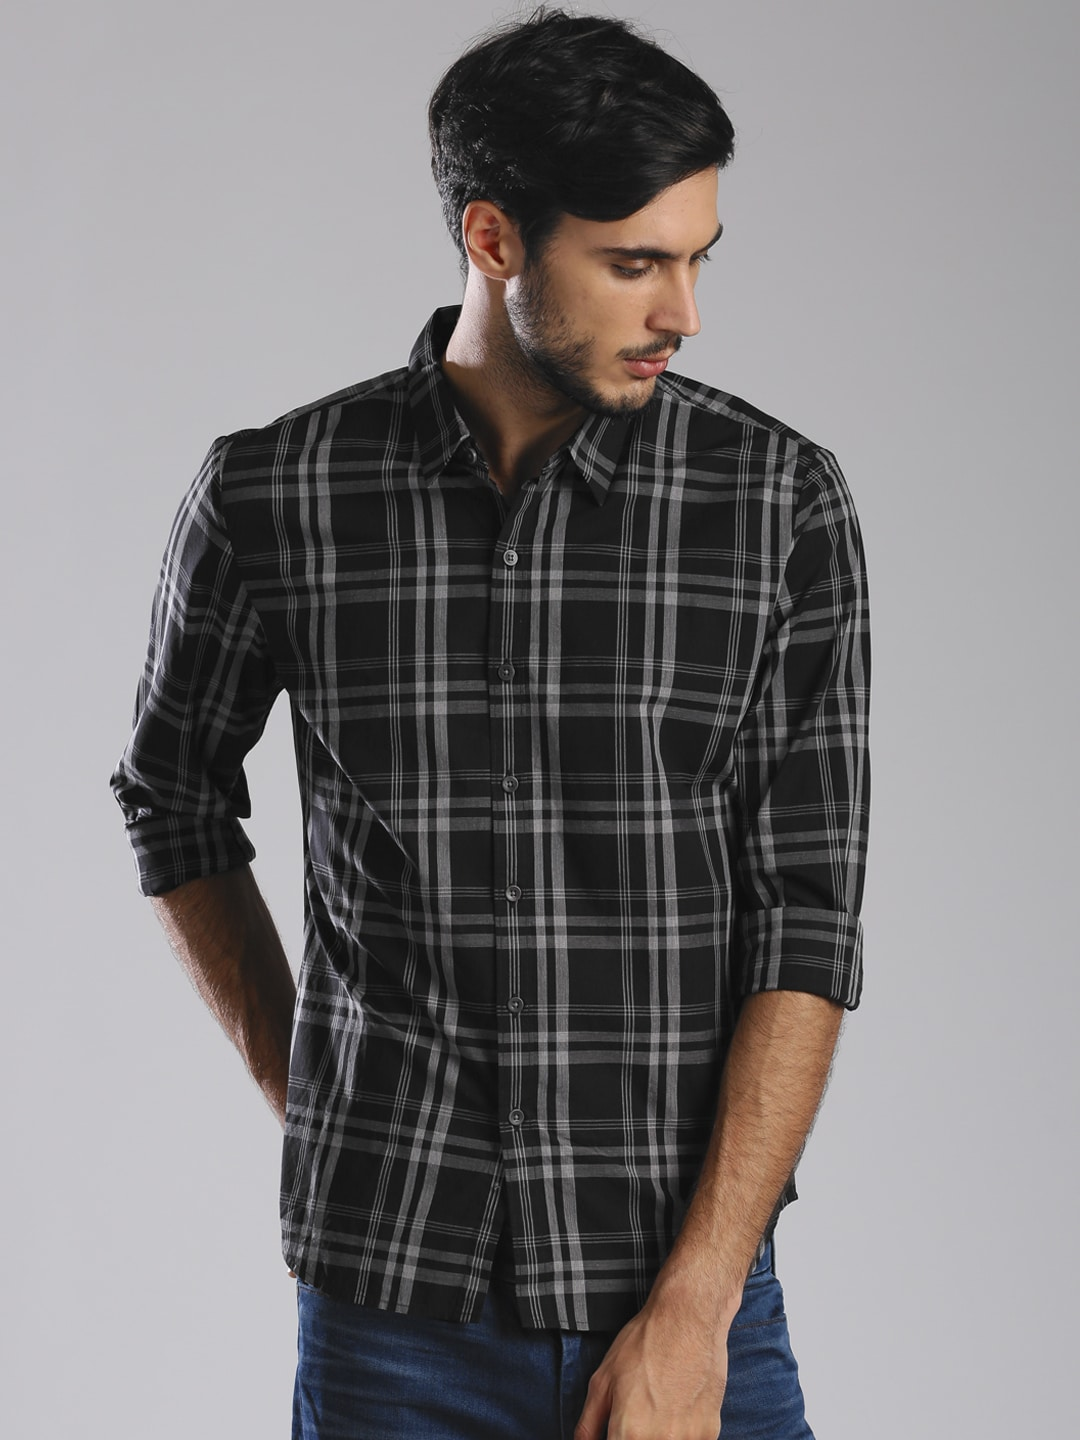 736cabfd Levis Check Shirt Price In India - raveitsafe